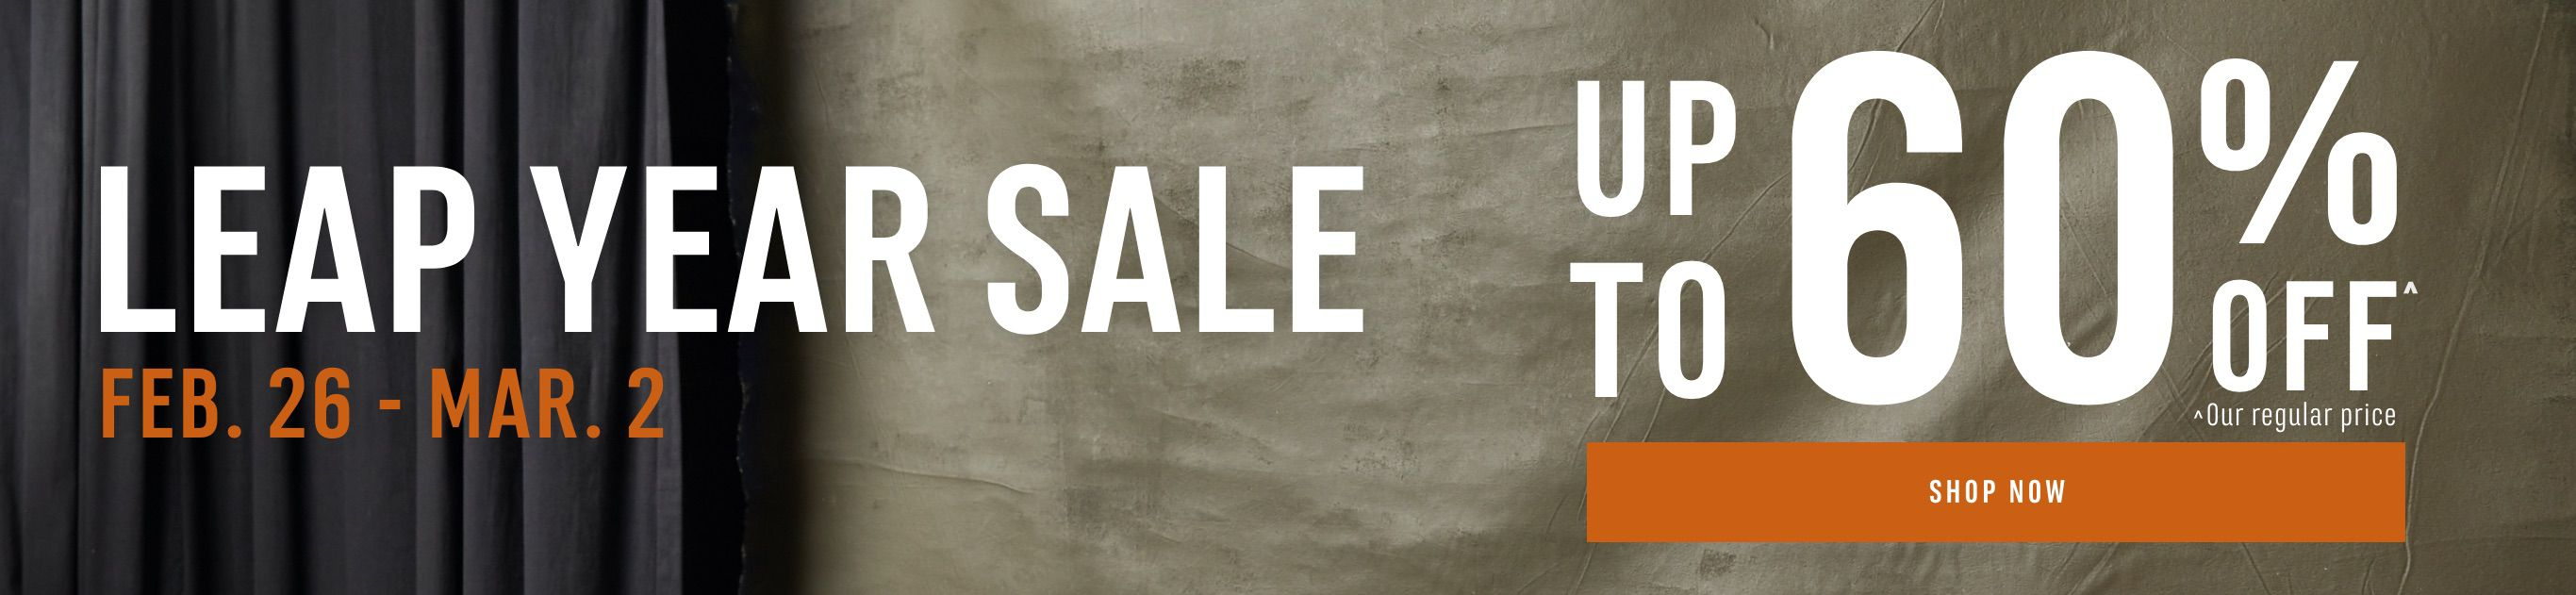 Leap Year Sale - Feb. 26 to Mar. 2, 2020! Up to 60% Off Our Regular Price.